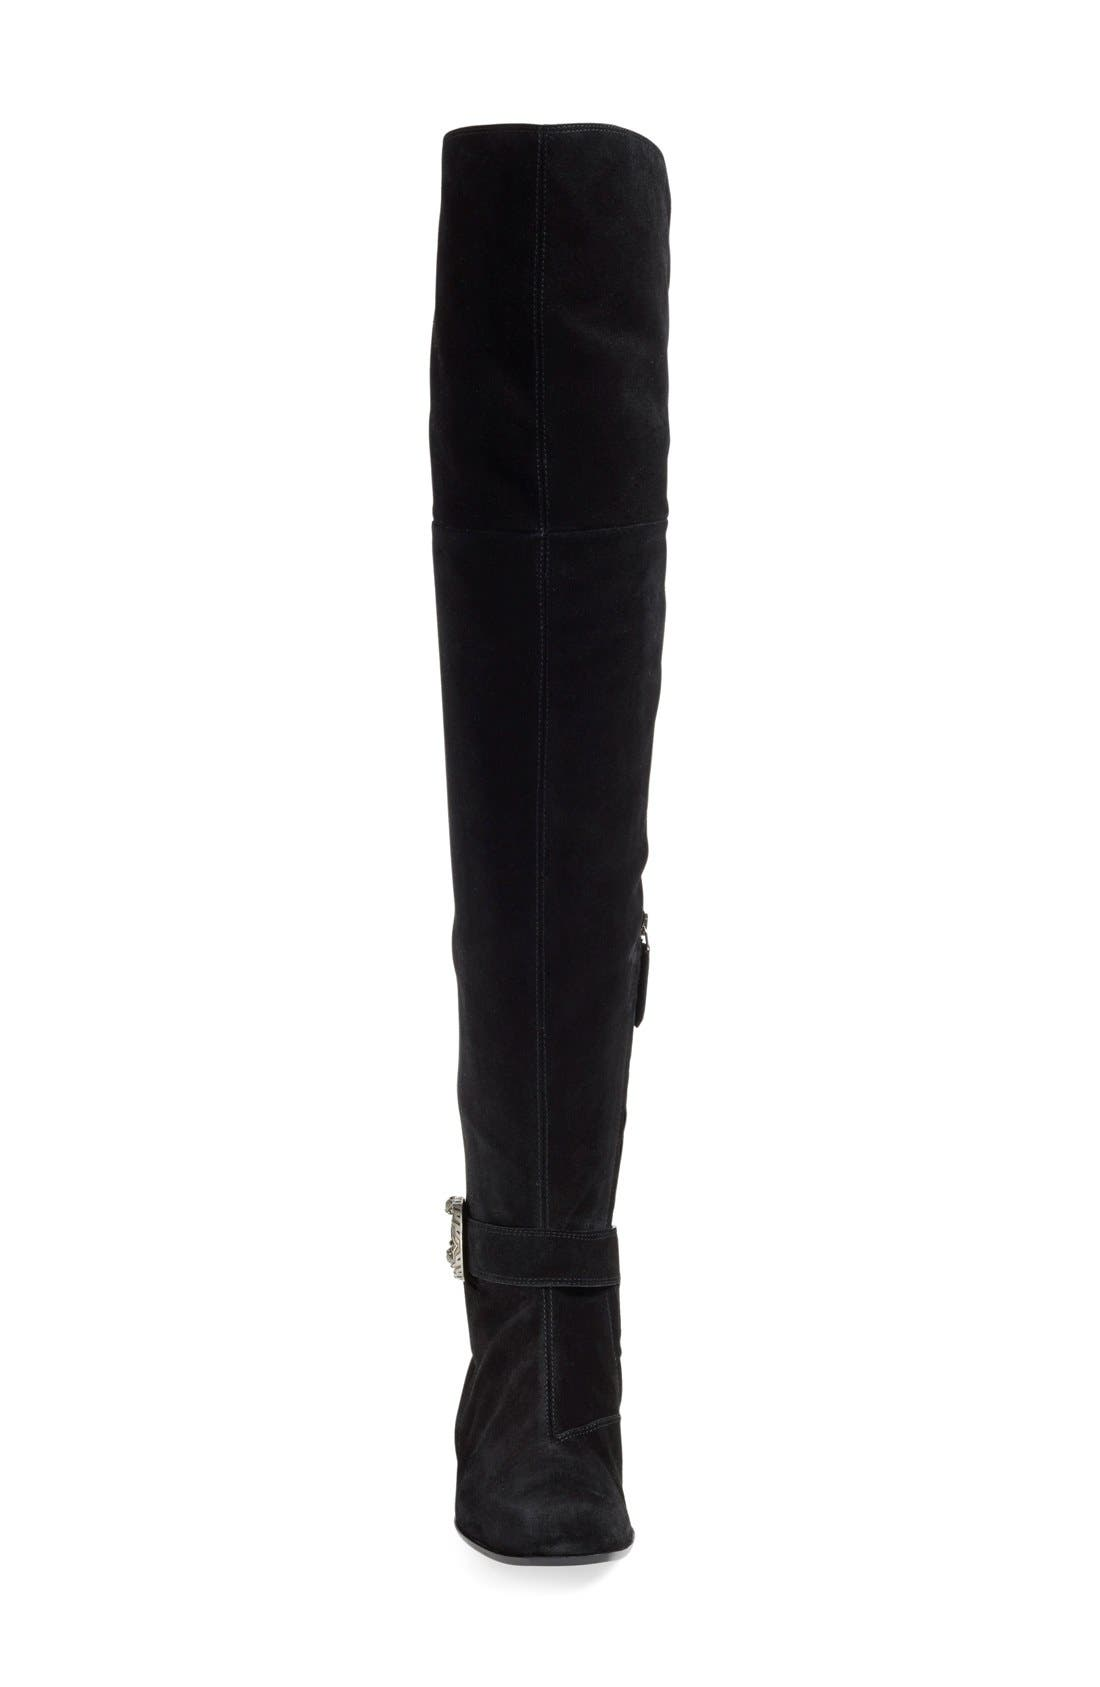 'Dionysus' Over the Knee Boot,                             Alternate thumbnail 4, color,                             001